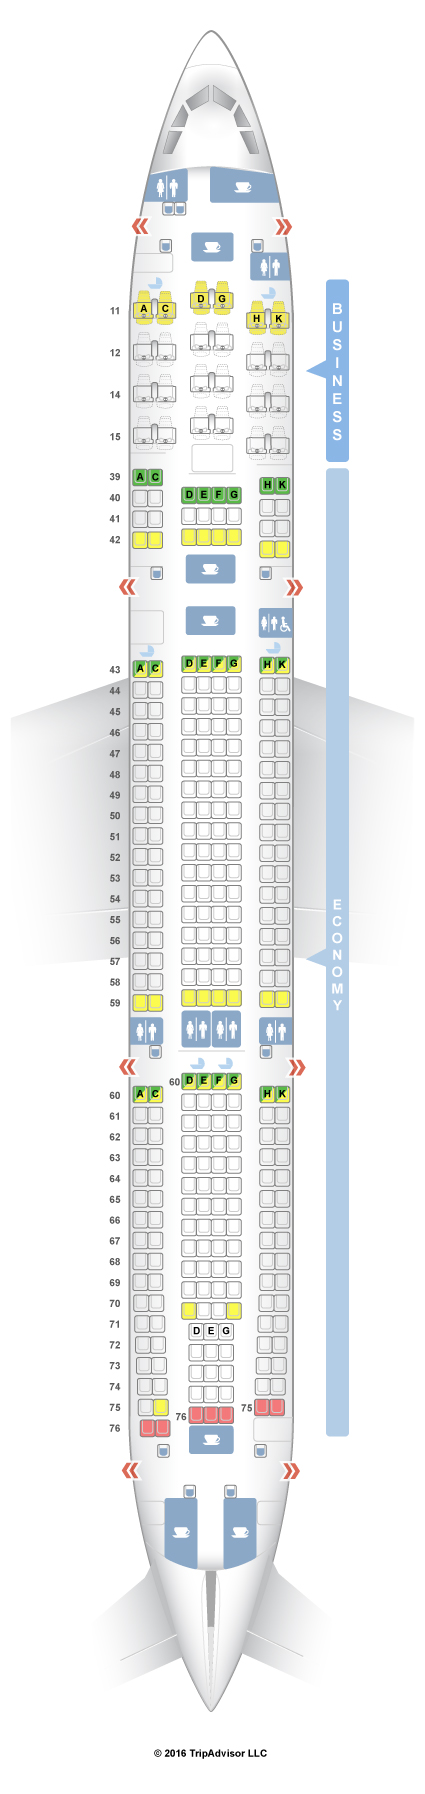 A330 300 Seat Map Cathay Pacific SeatGuru Seat Map Cathay Pacific   SeatGuru